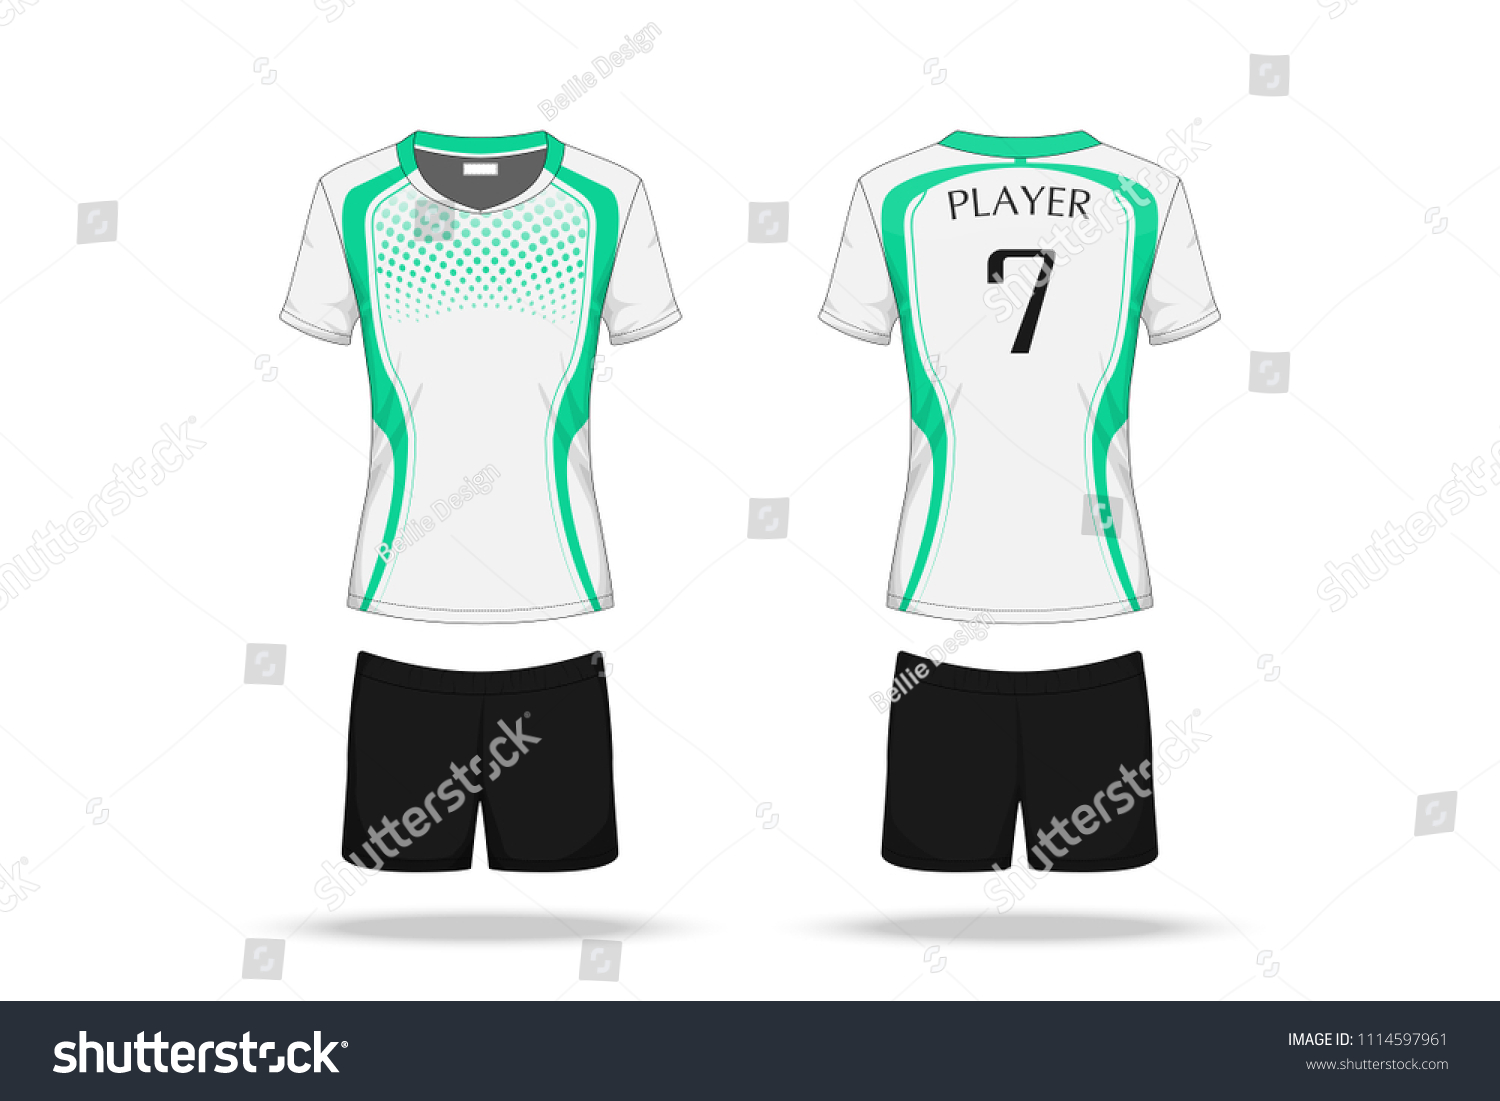 Specification Volleyball Jersey Isolated On White Beauty Fashion